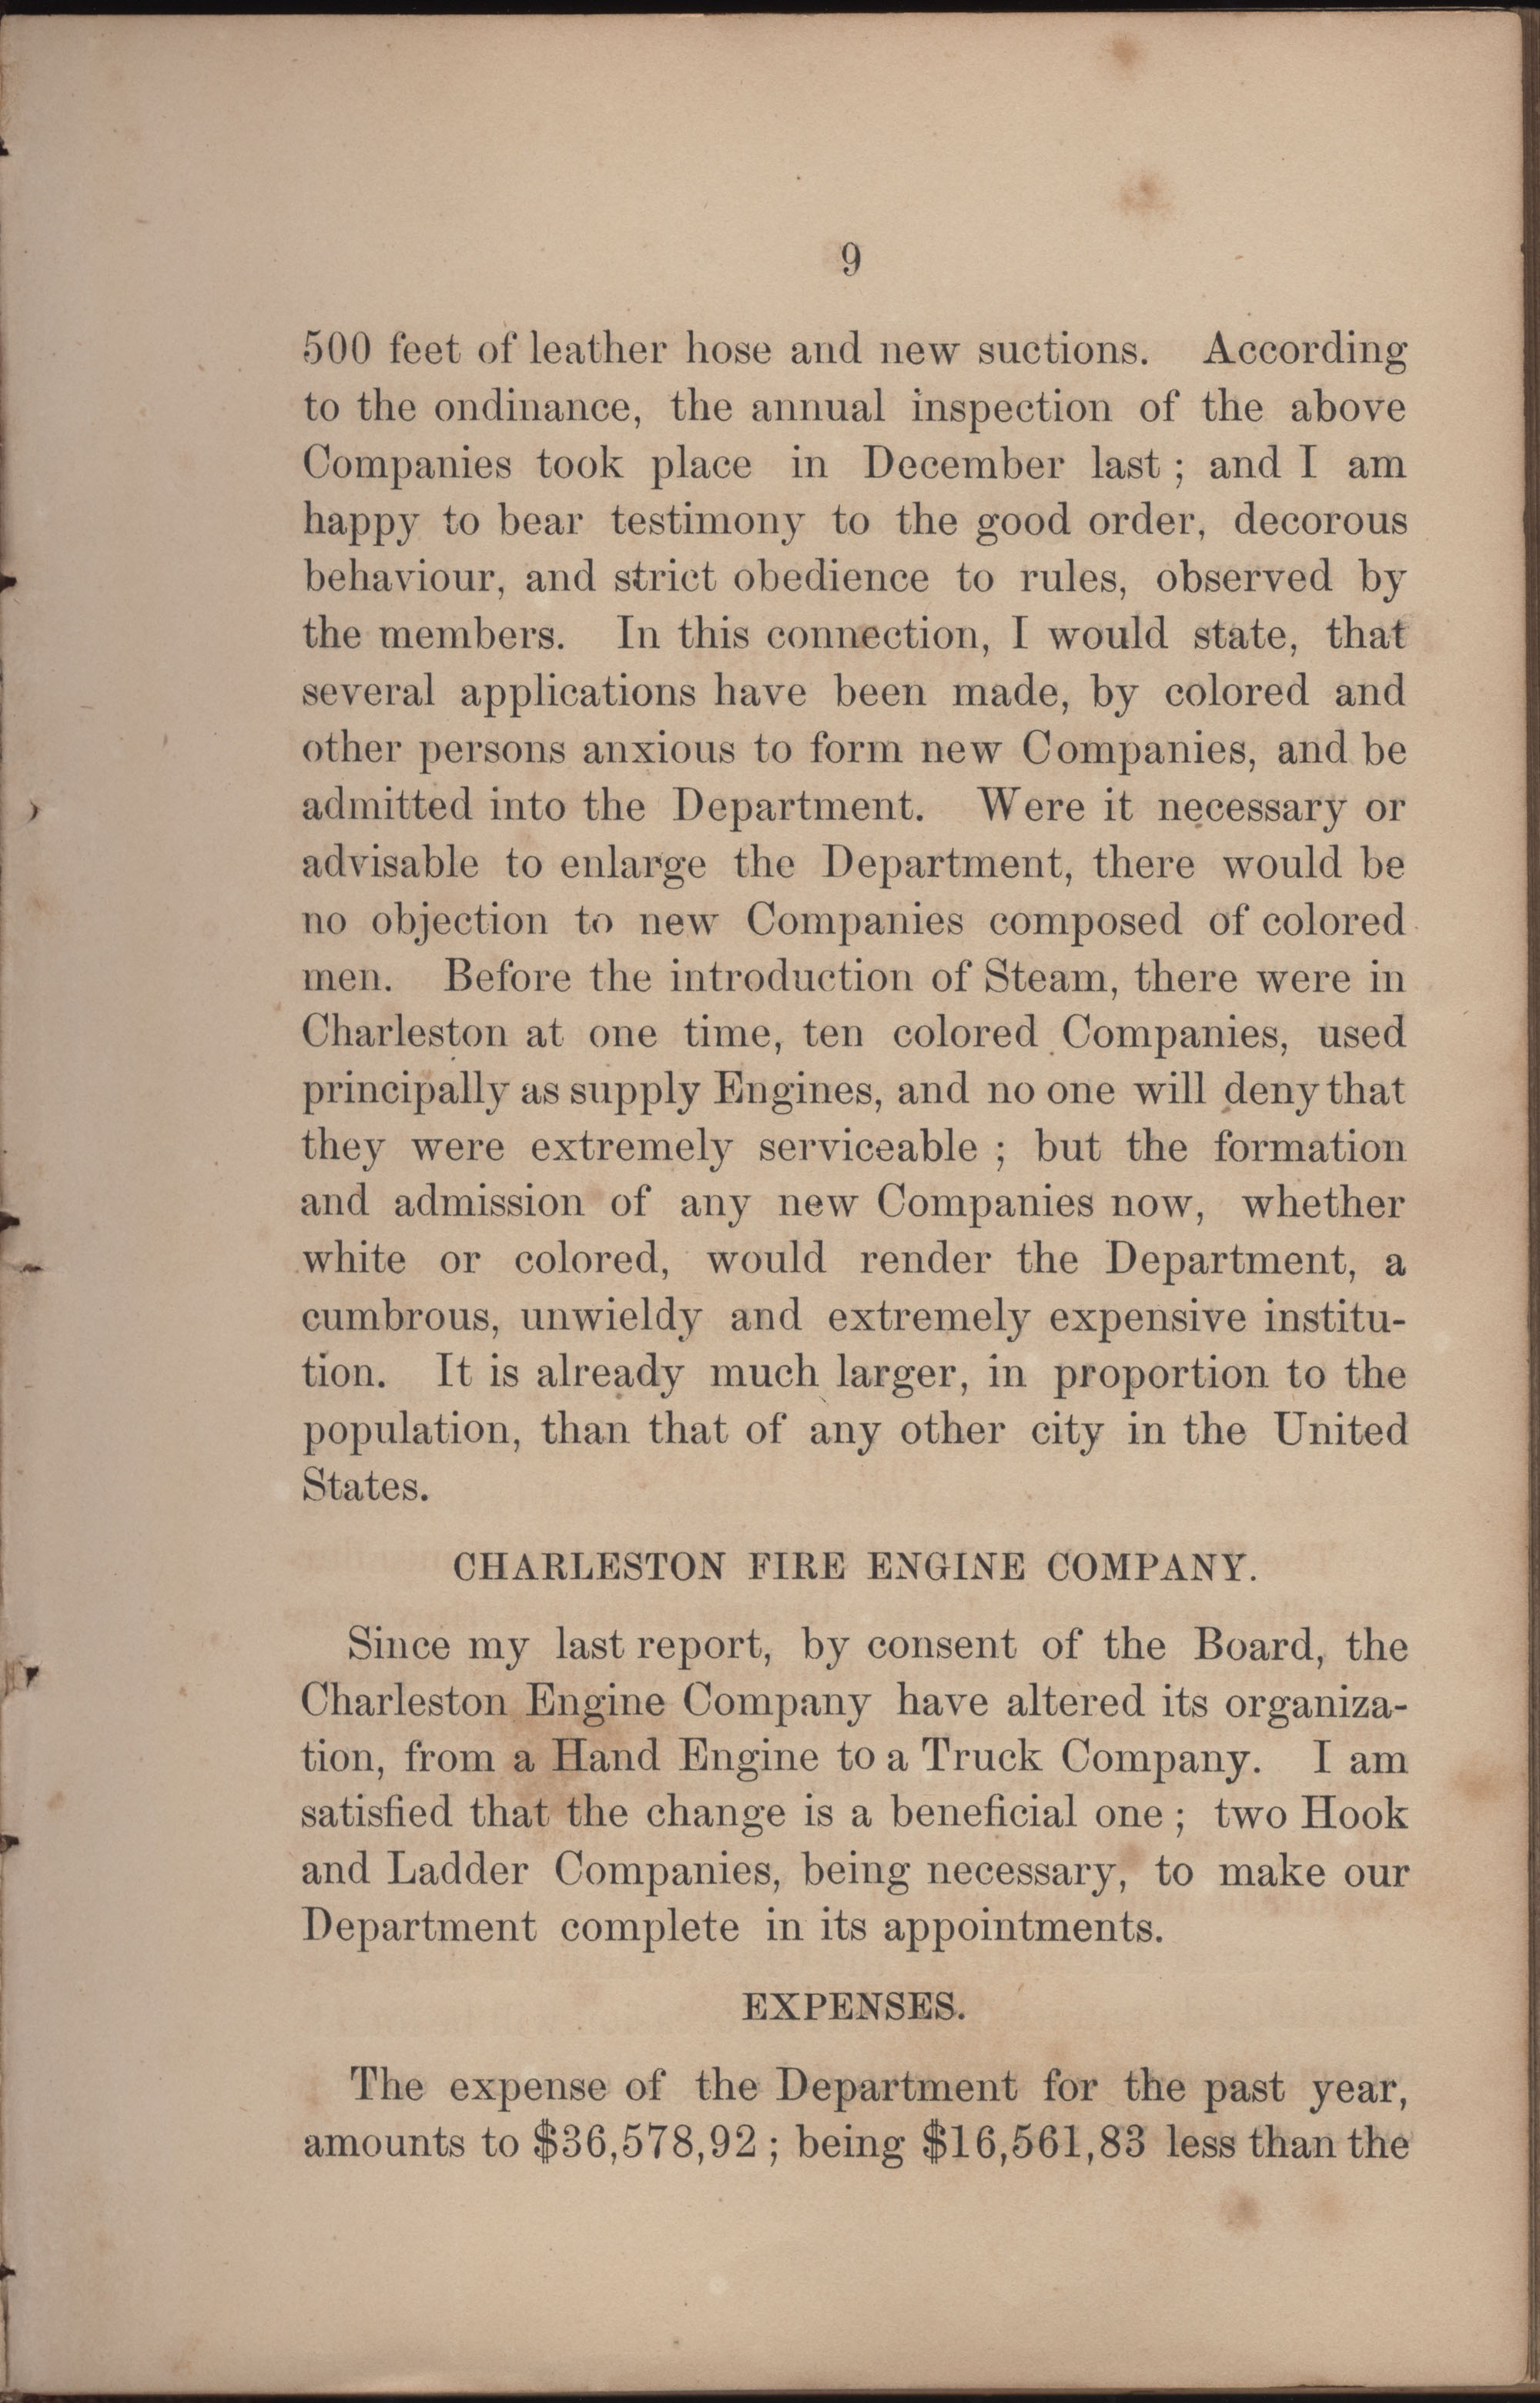 Annual Report of the Chief of the Fire Department of the City of Charleston, page 187